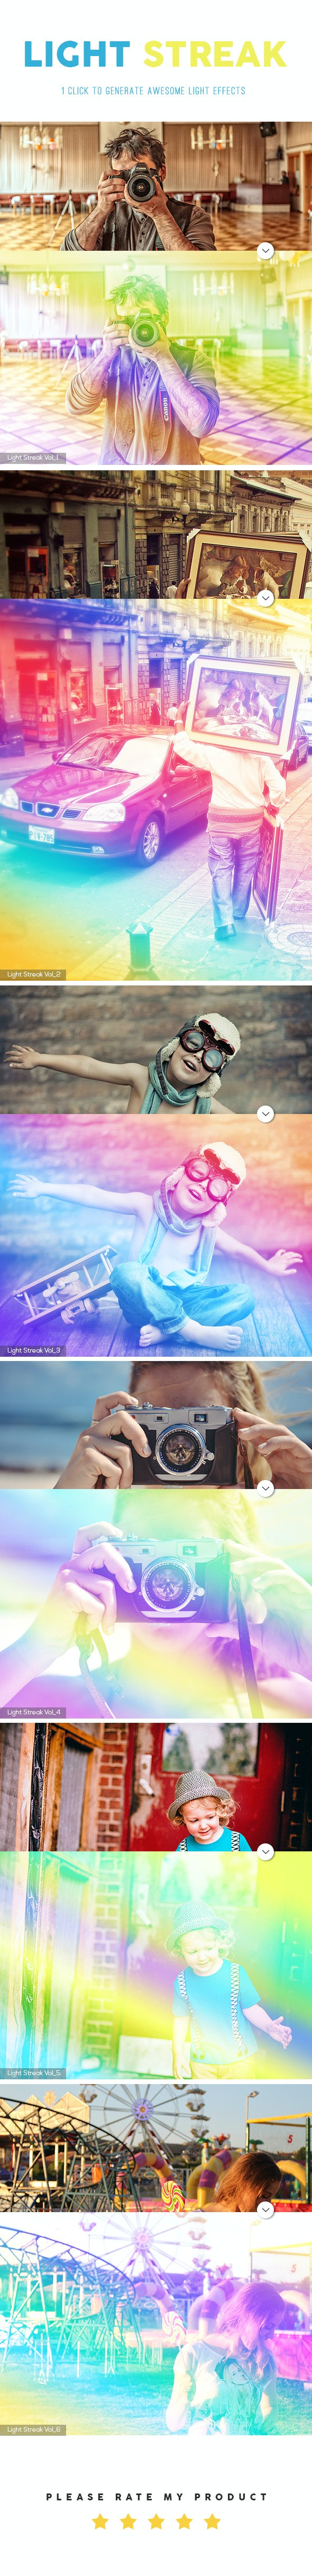 Light Streak Action - Photo Effects Actions